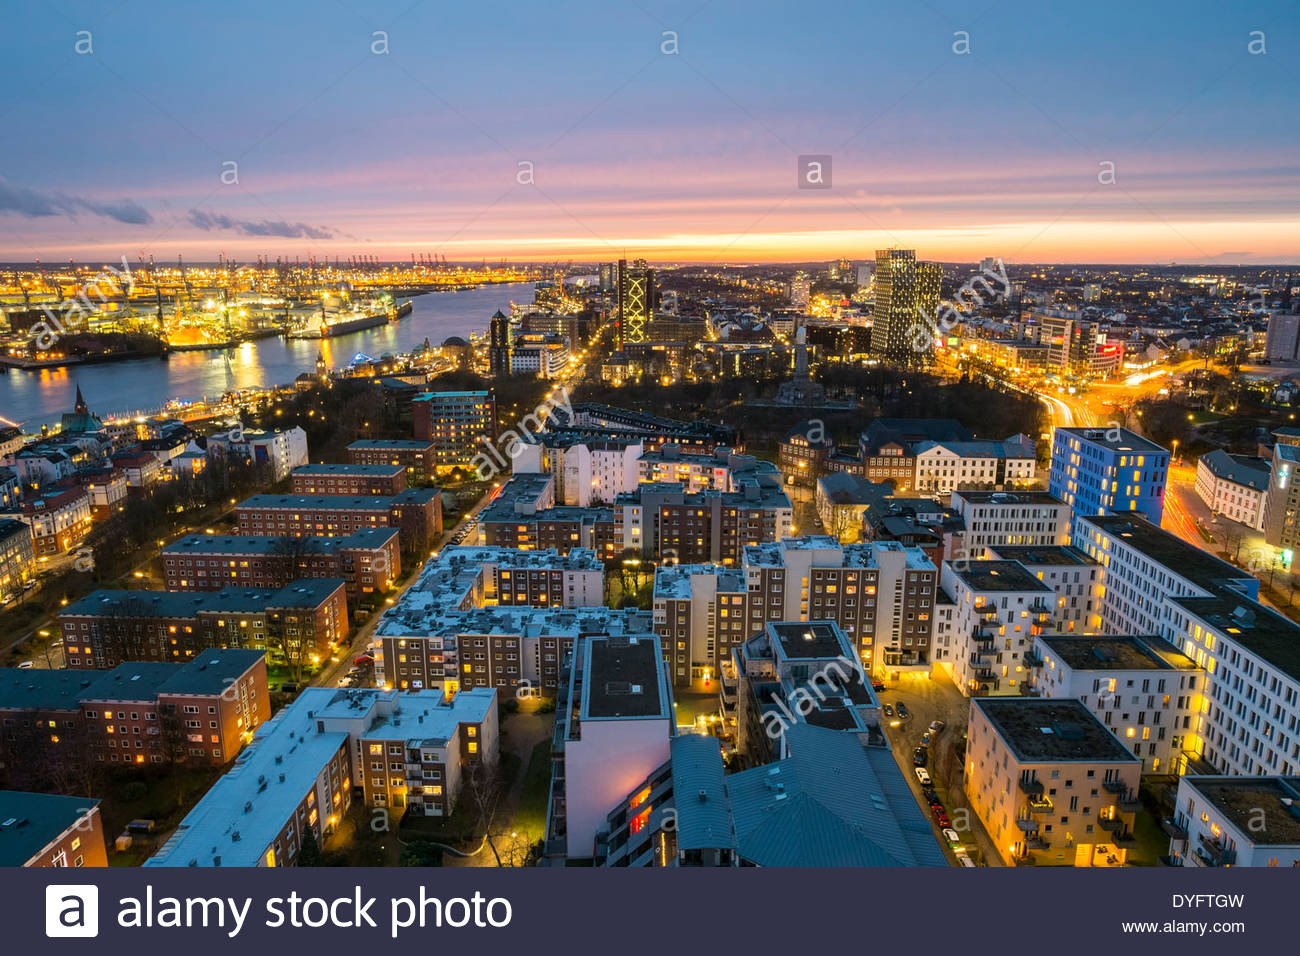 Hamburg Skyline Bild High Angle View Of Central Hamburg City Skyline At Night